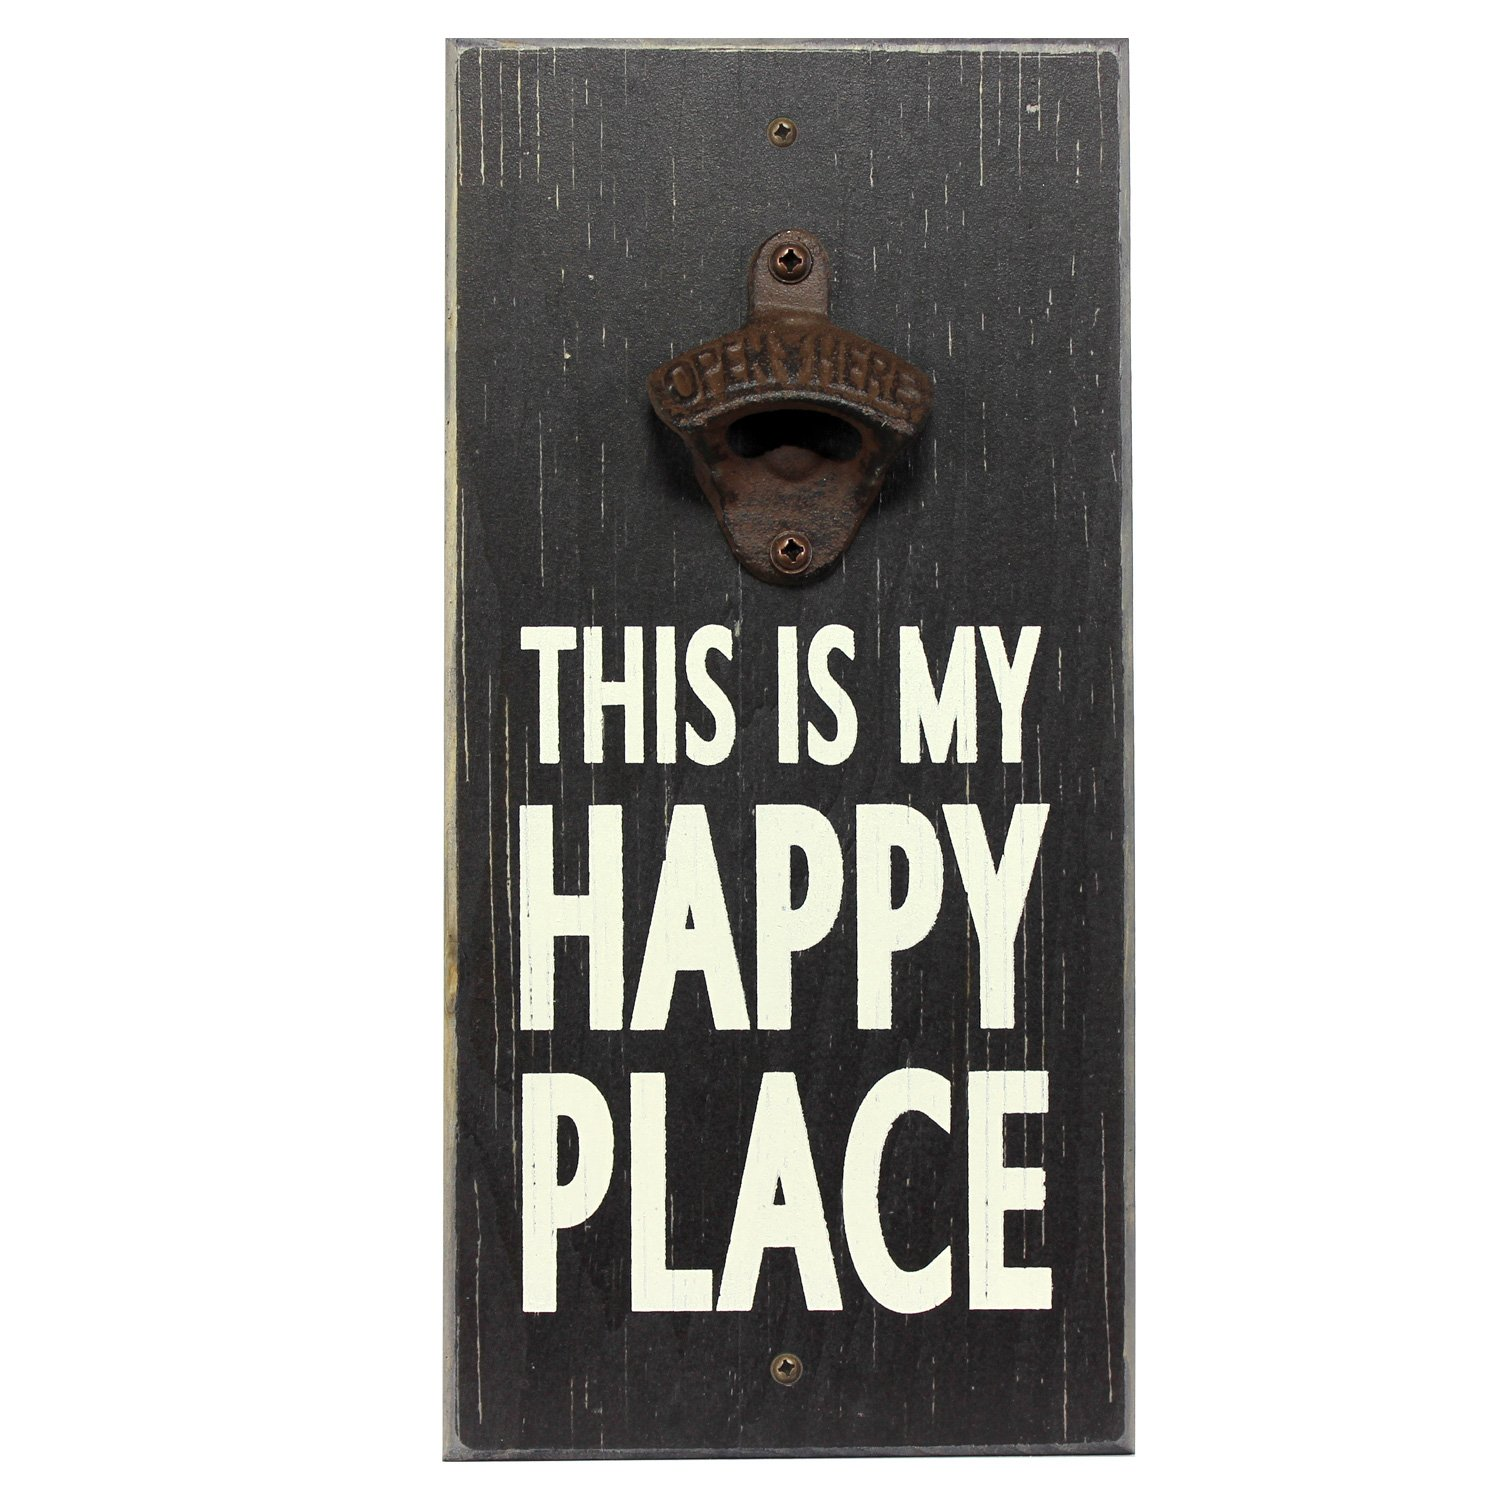 My Word My Happy Place Wooden Wall Mounted Bottle Opener